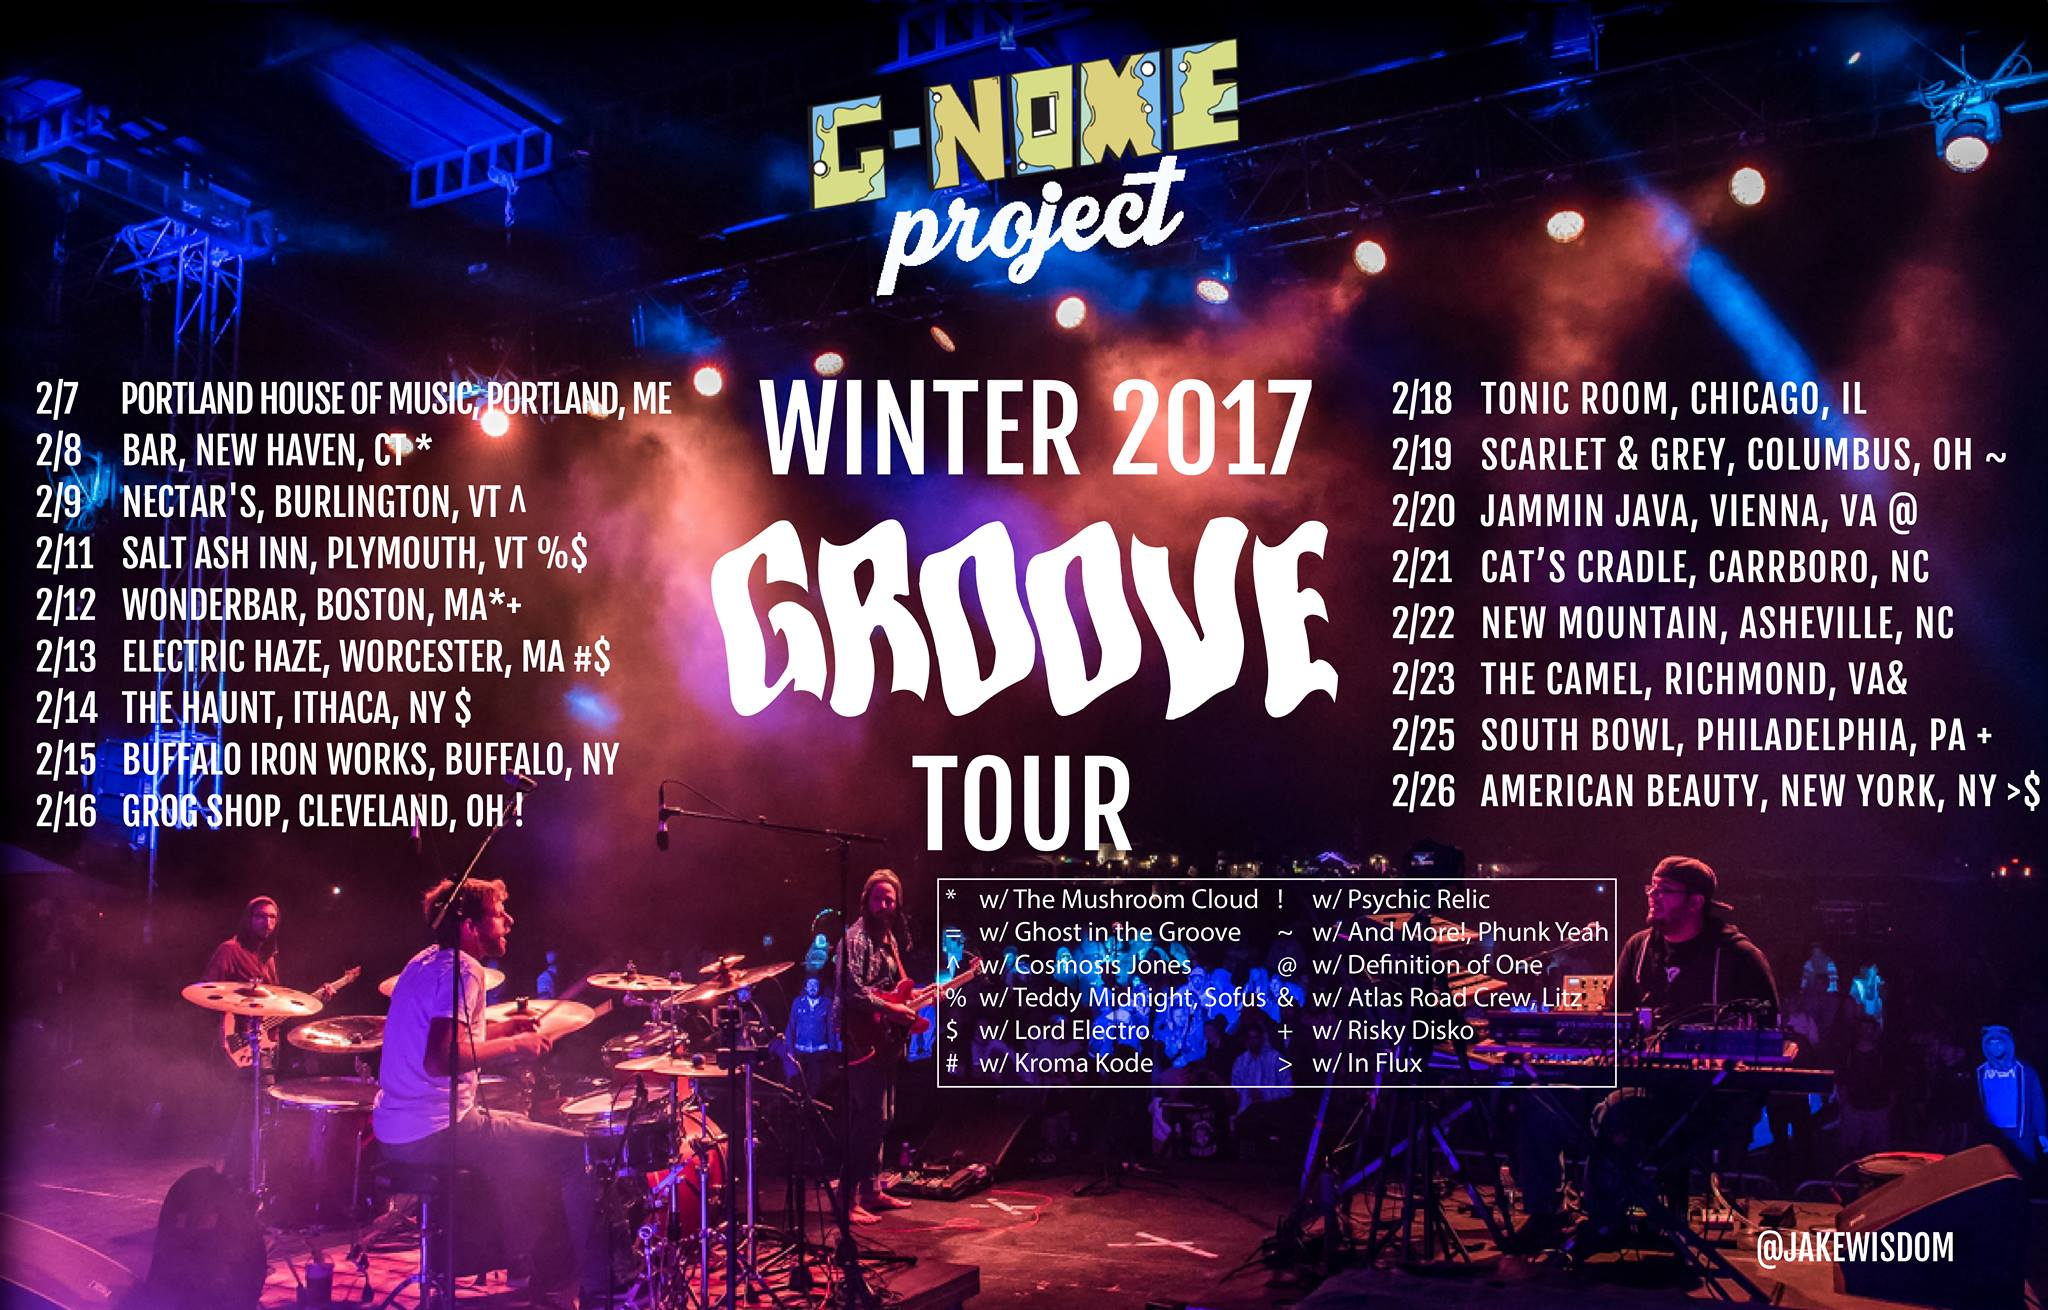 Check out the show details on our  tour page .